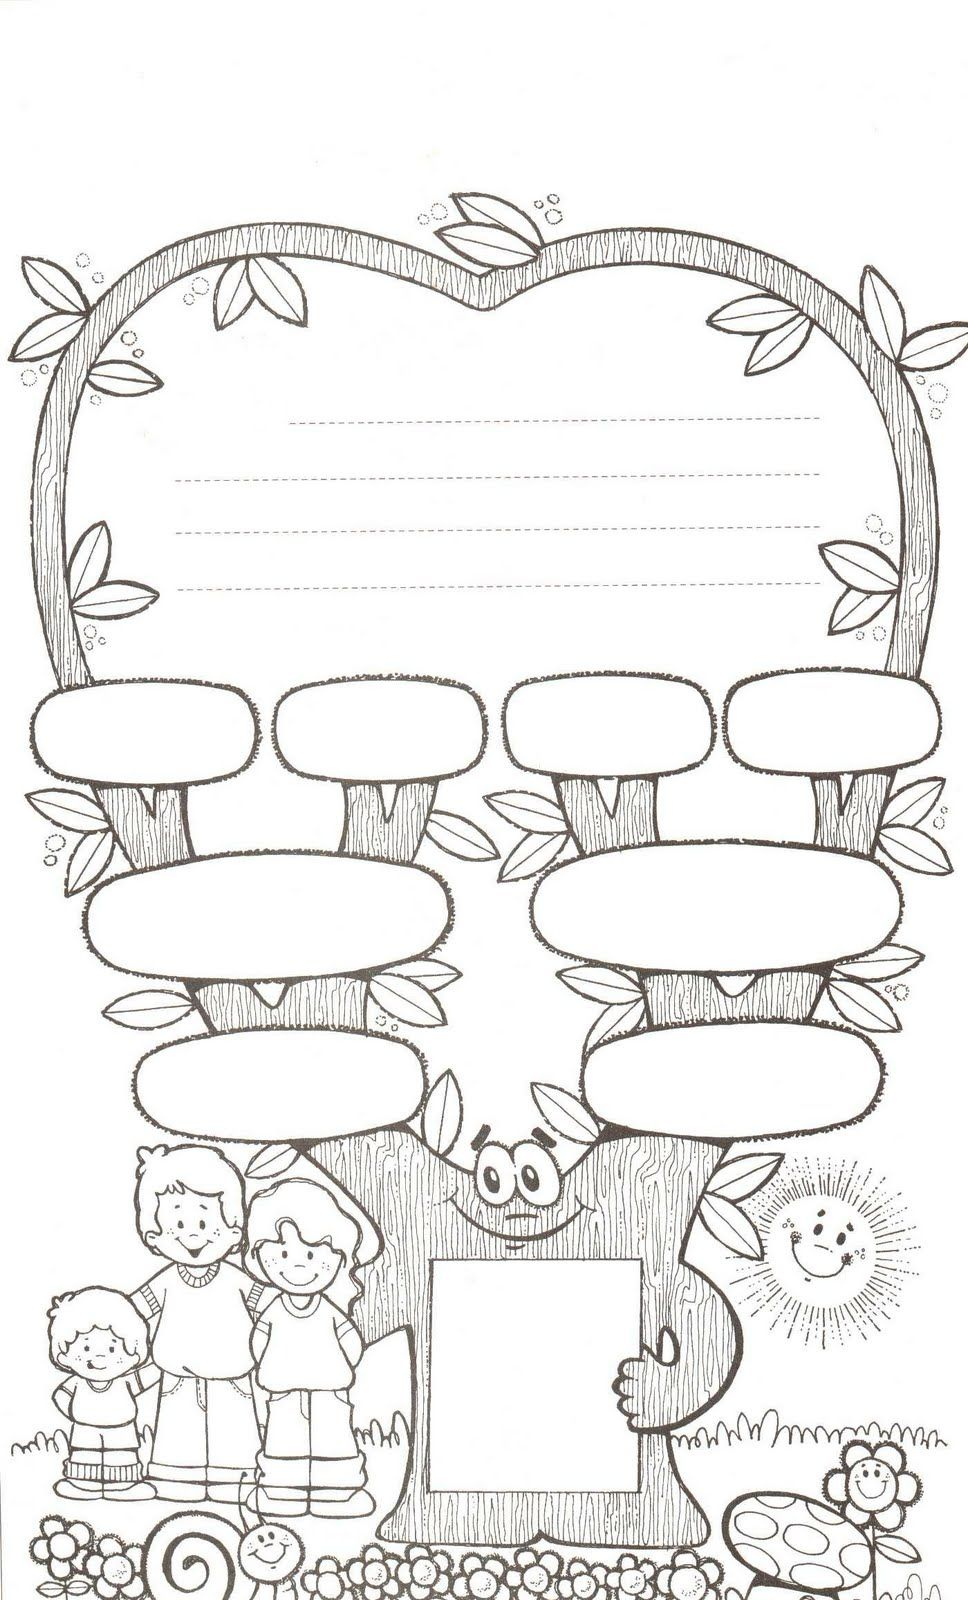 Worksheets Family Tree Worksheet For Kids family tree worksheet printable more